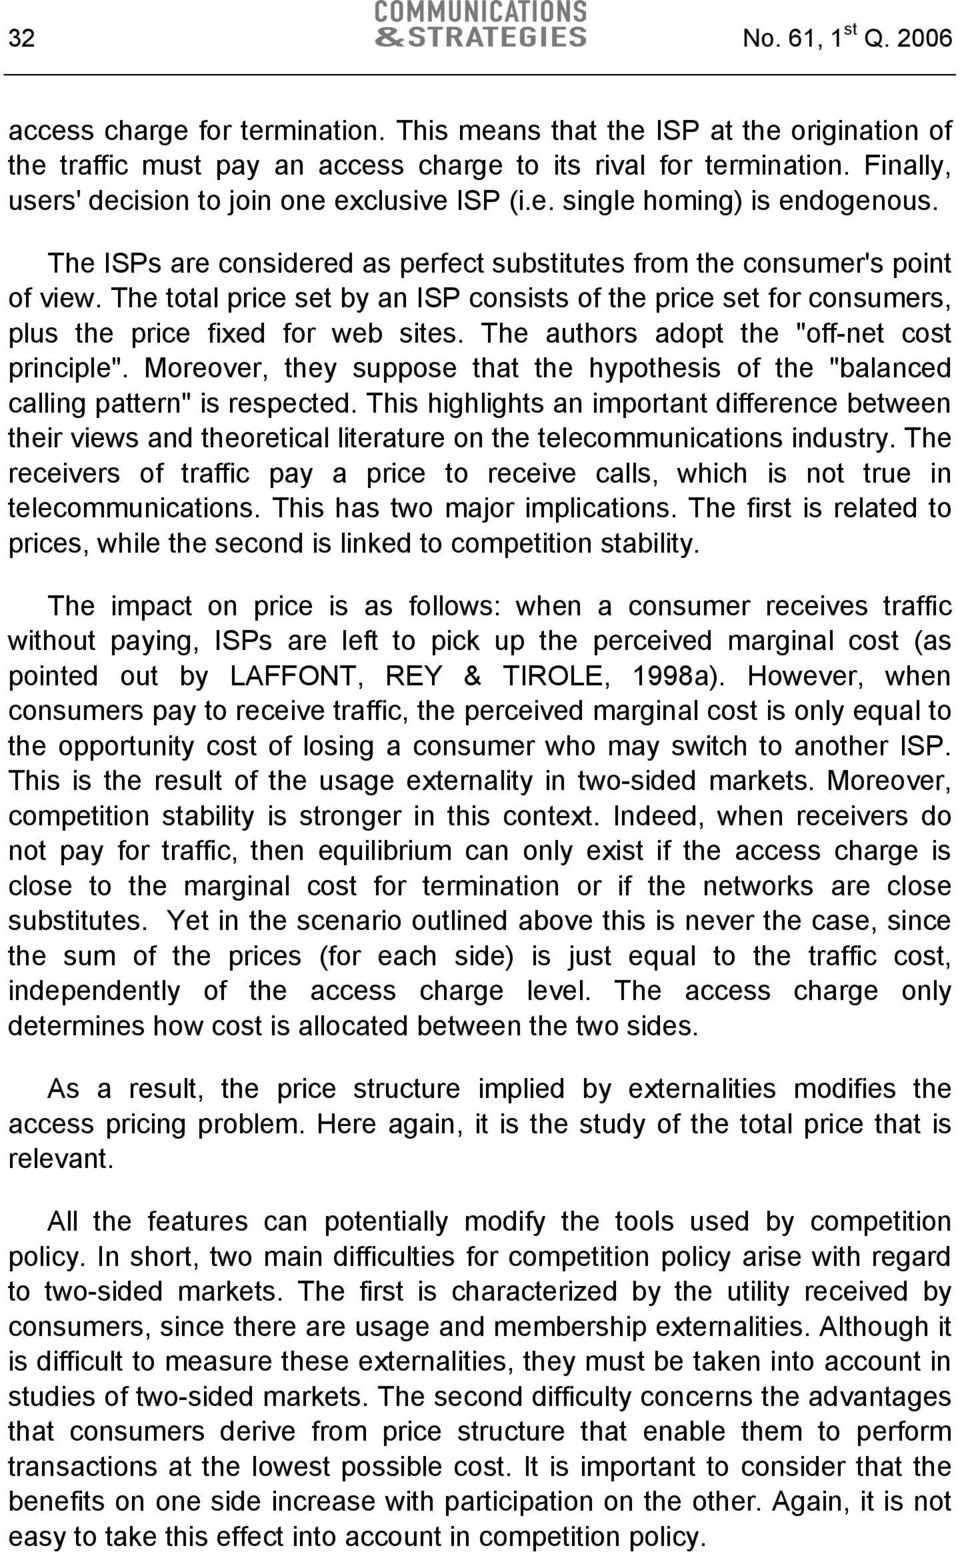 "The total price set by an ISP consists of the price set for consumers, plus the price fixed for web sites. The authors adopt the ""off-net cost principle""."